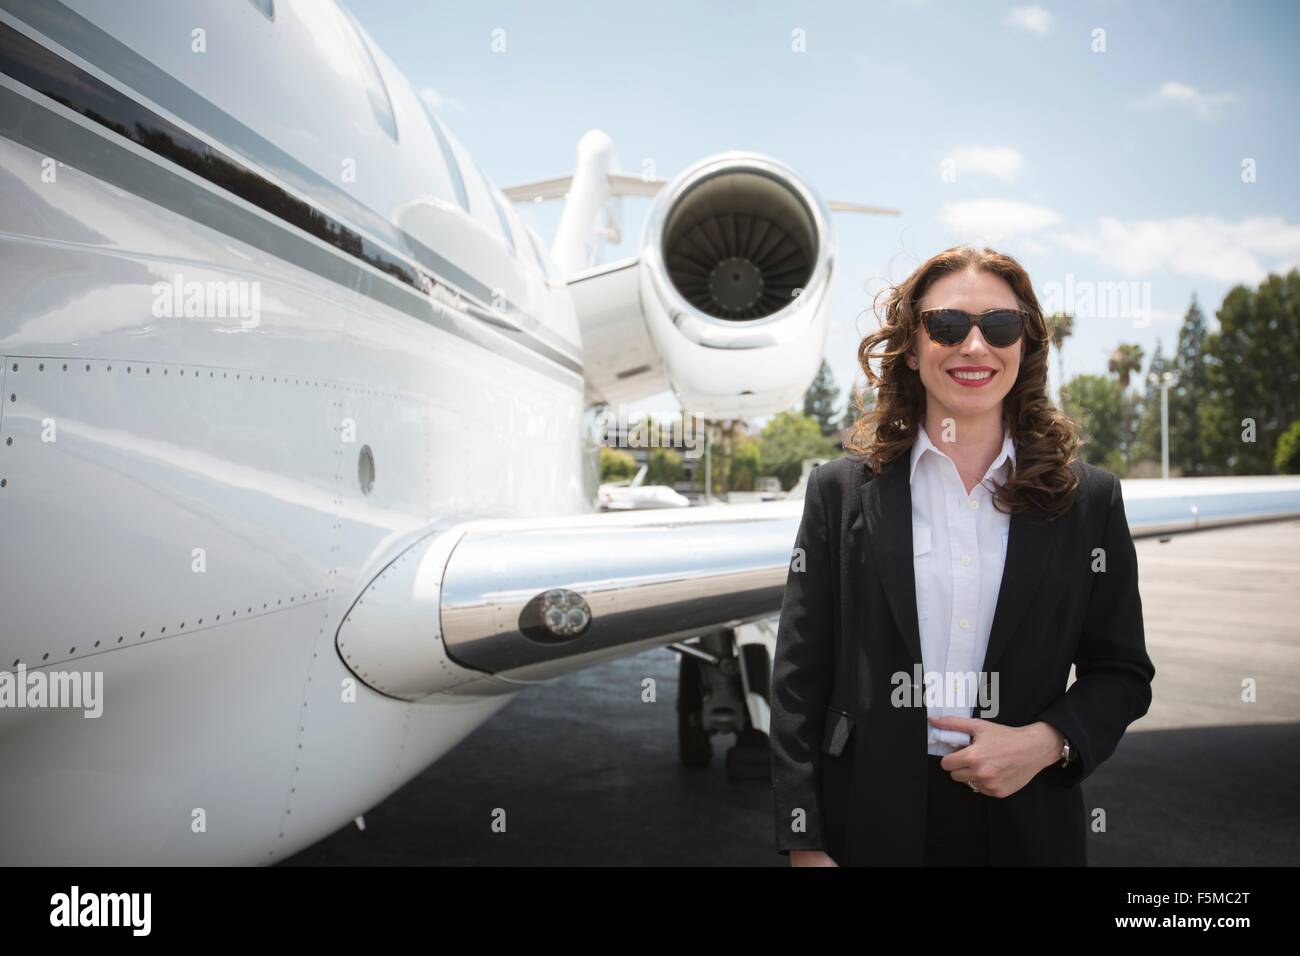 Portrait of mid adult female businesswoman and private jet at airport - Stock Image